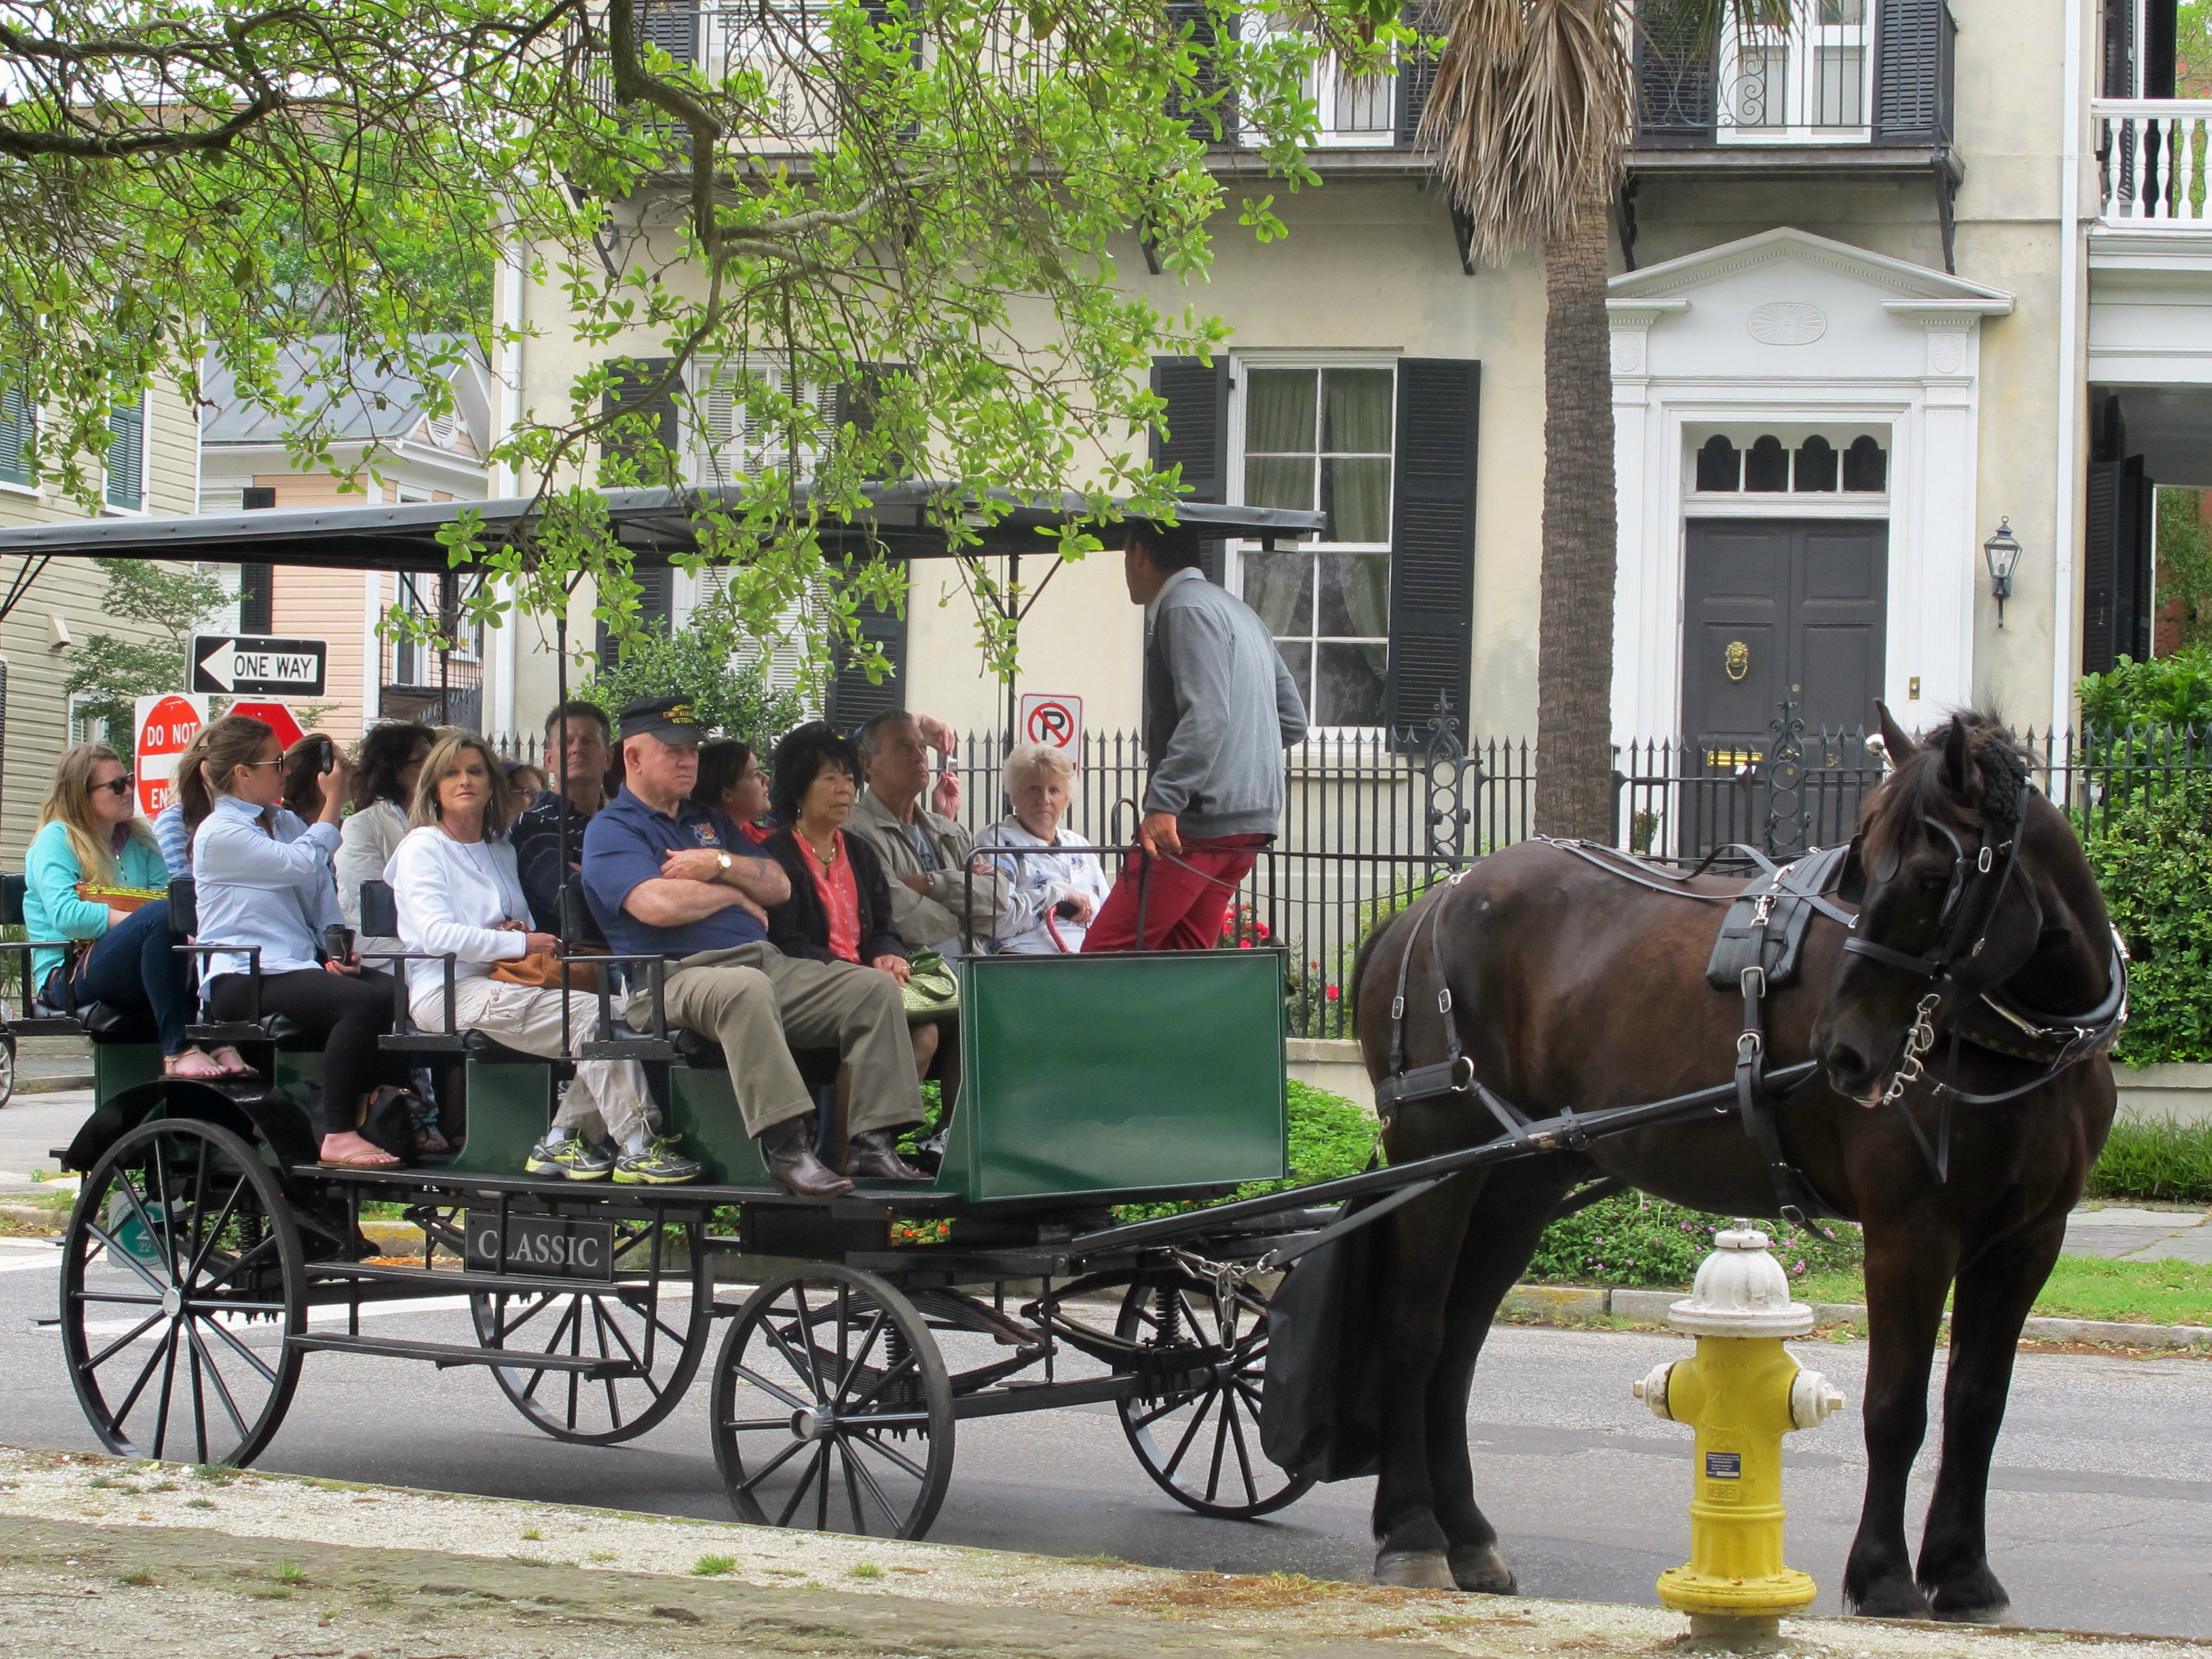 Horse-drawn carriage rides are popular in Charleston, S.C., which has become a popular spot for destination weddings.